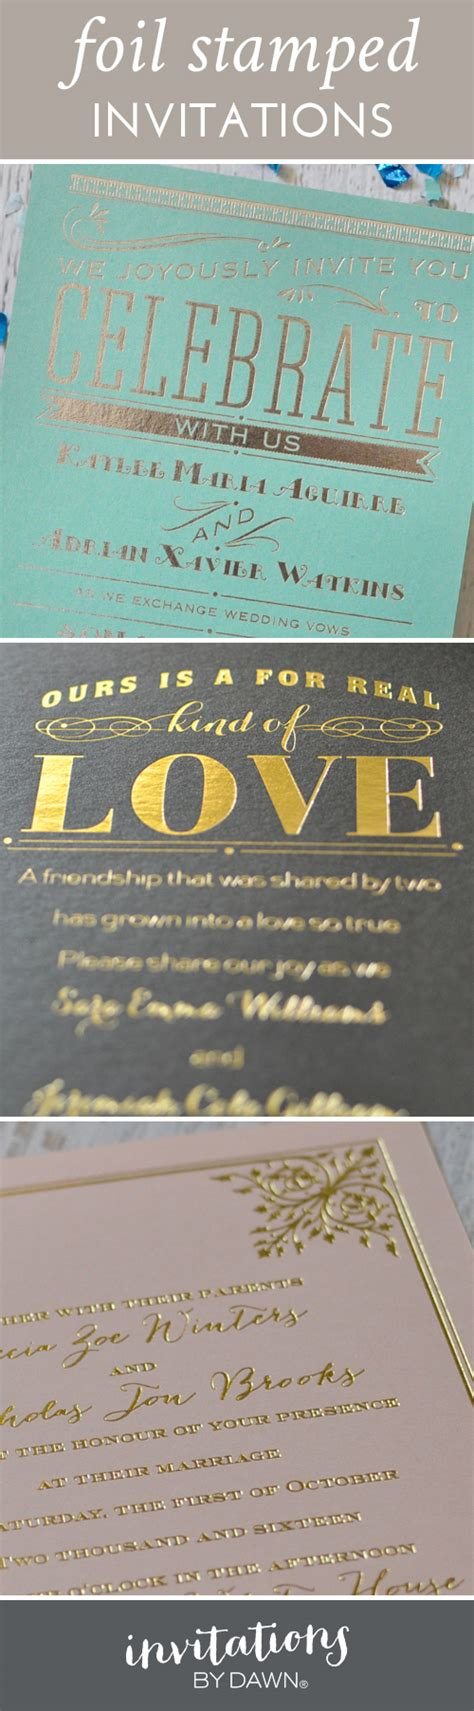 foil sted wedding invites you had me at foil